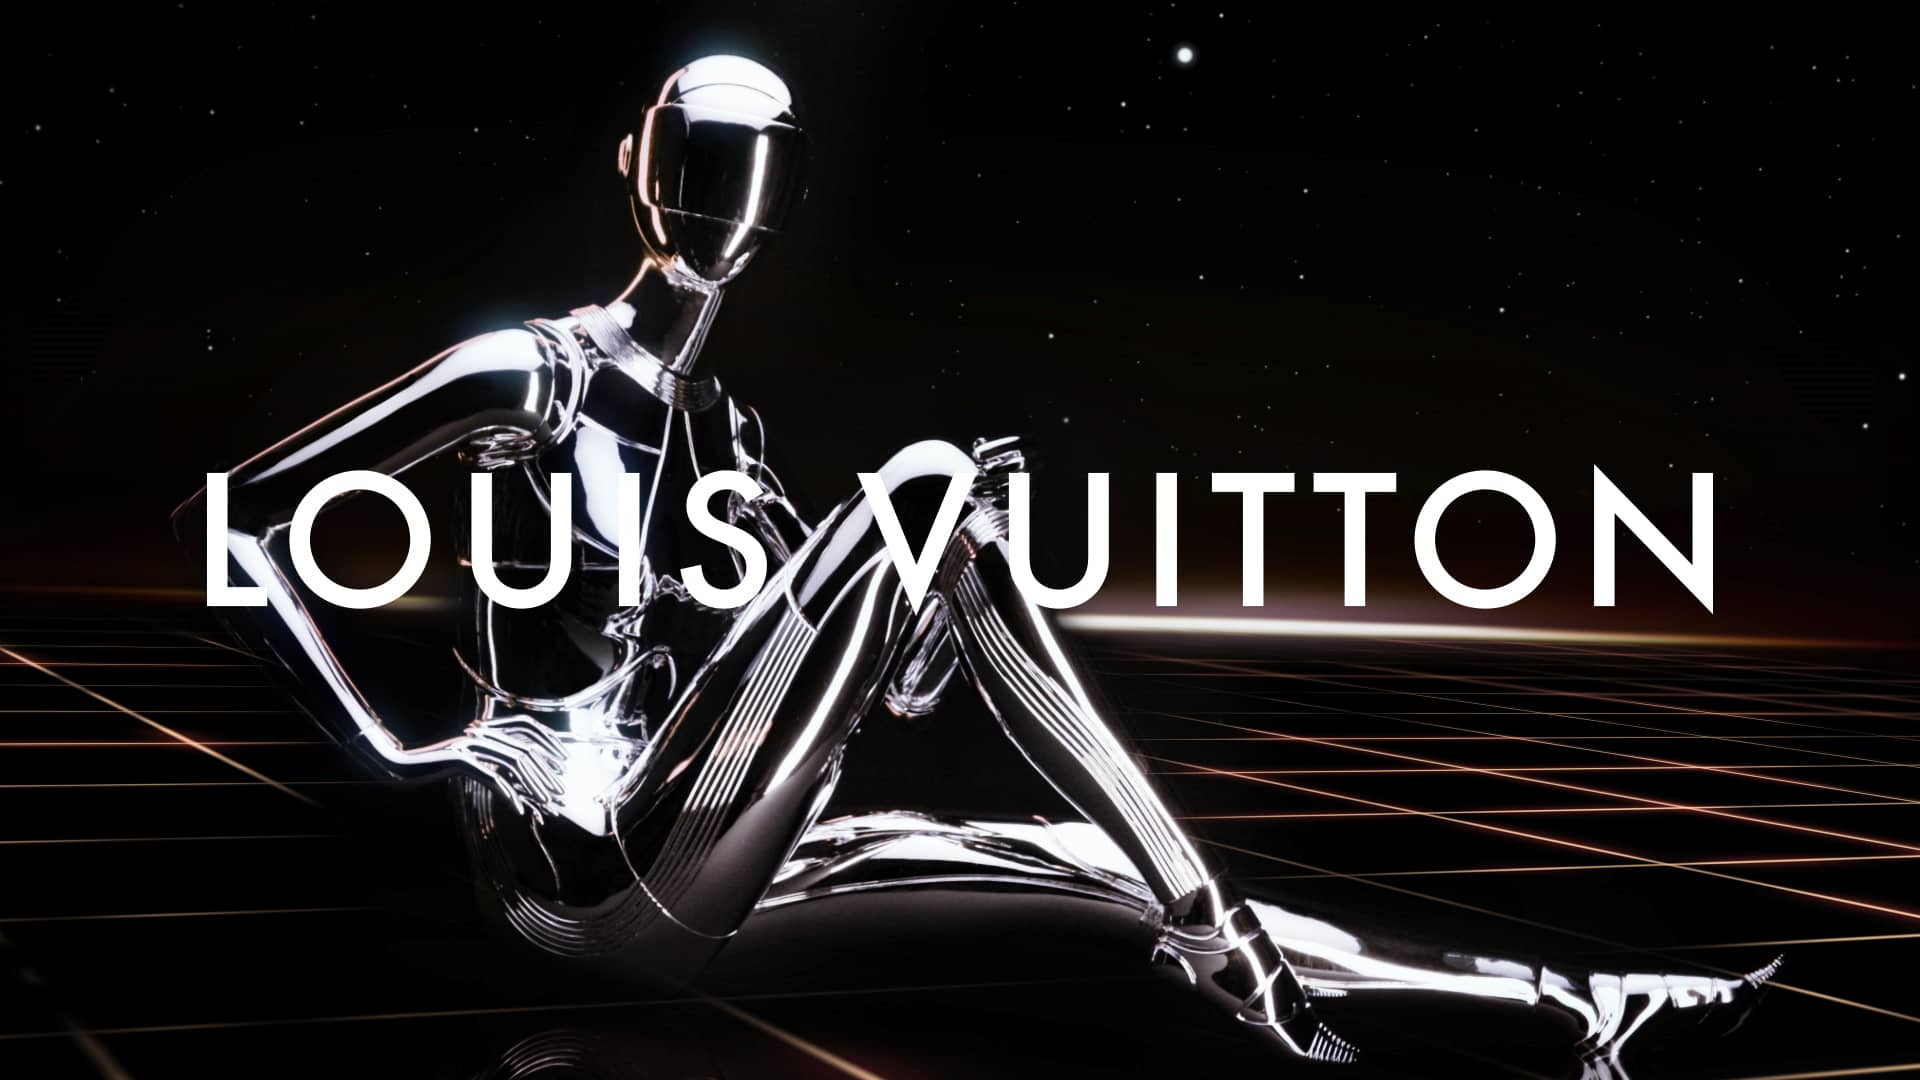 """Space Travel of the Digital Girl"" Louis Vuitton campagne printemps été 2016"